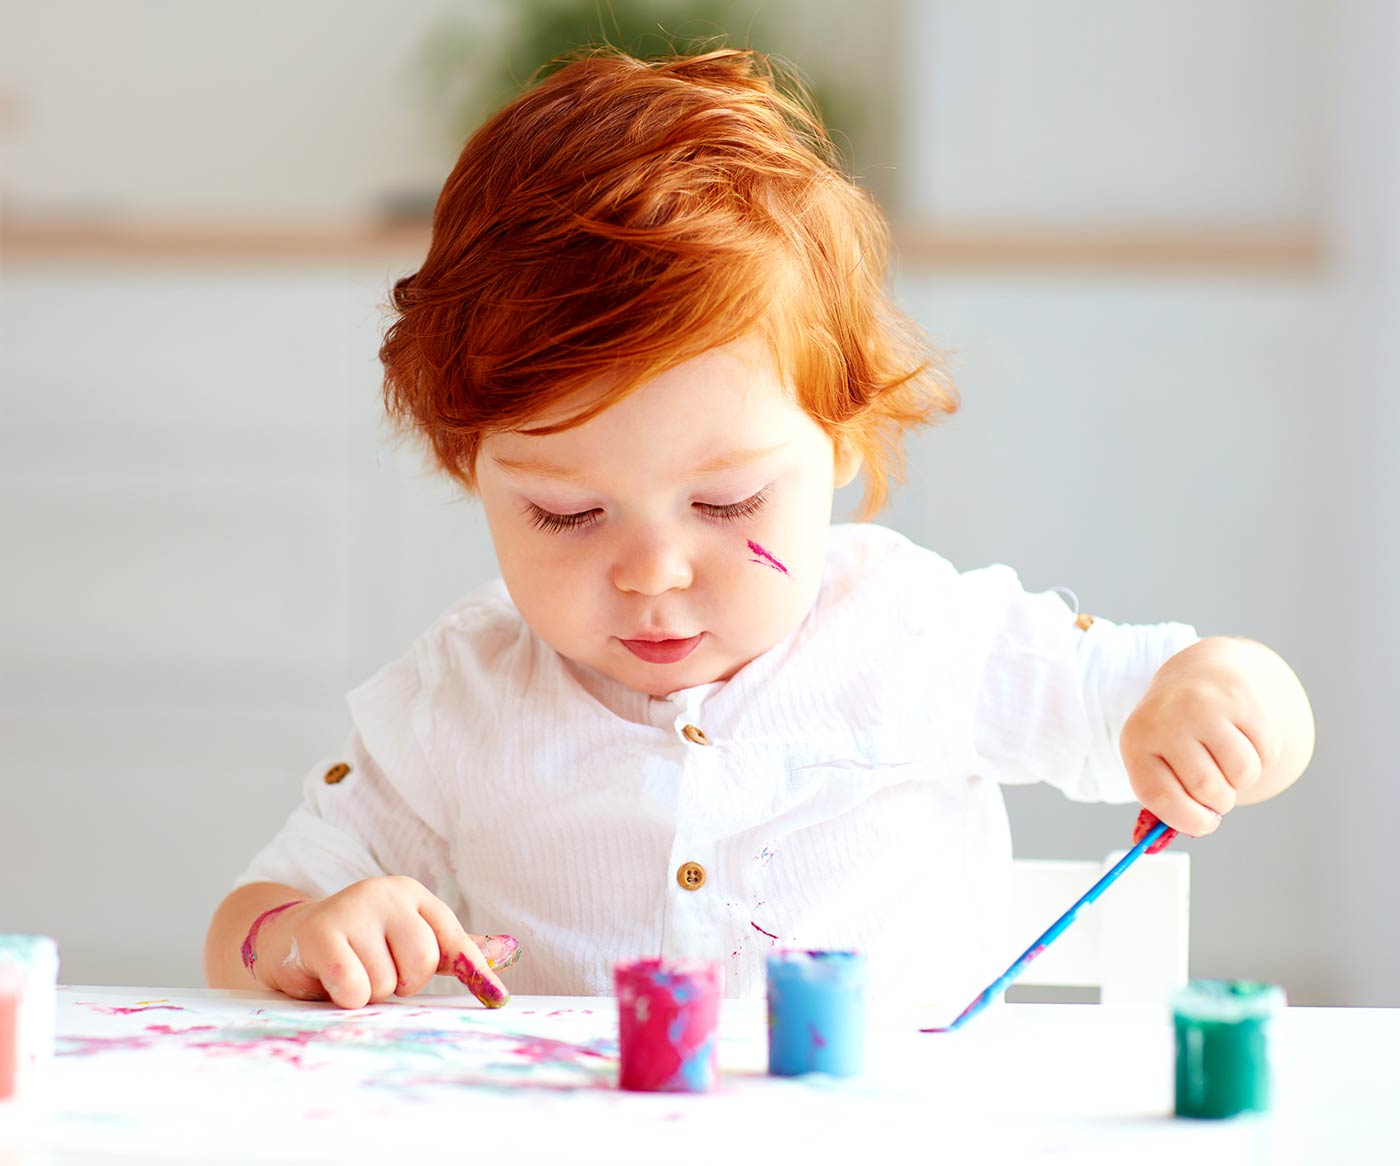 A child painting and doing arts and crafts for 1 year olds